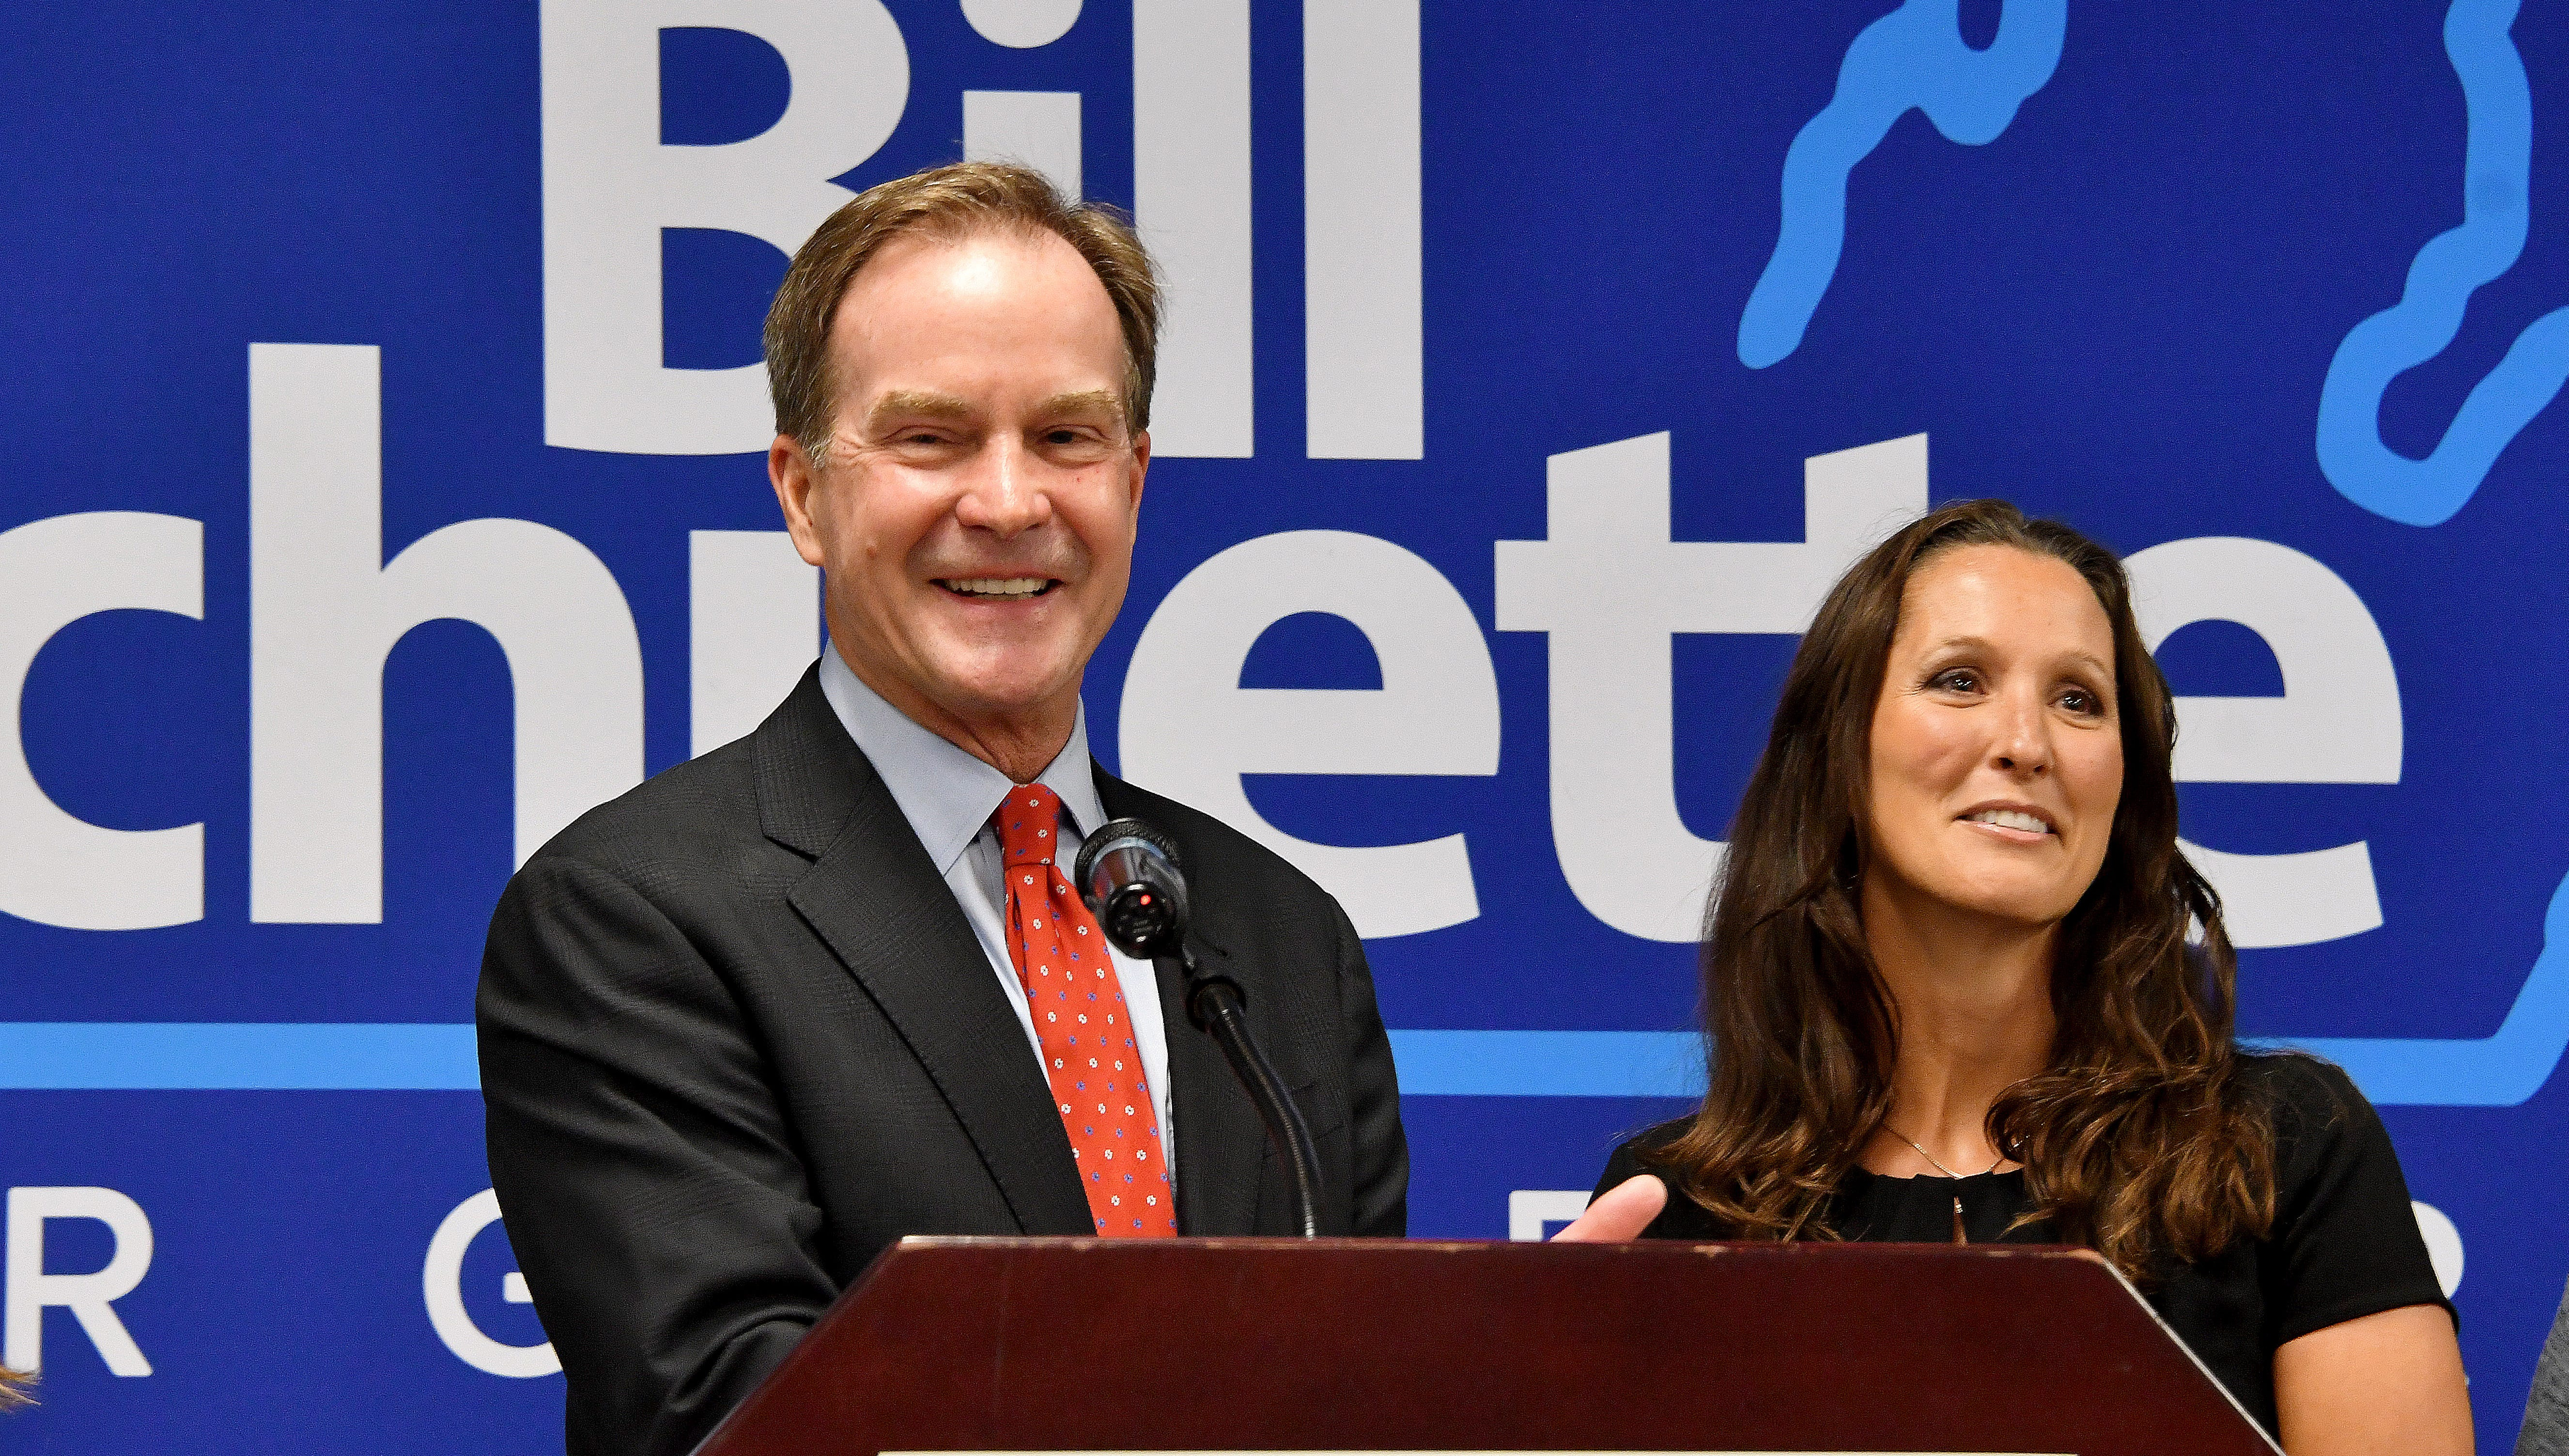 Finley and Jacques: Schuette best hope for continuing growth